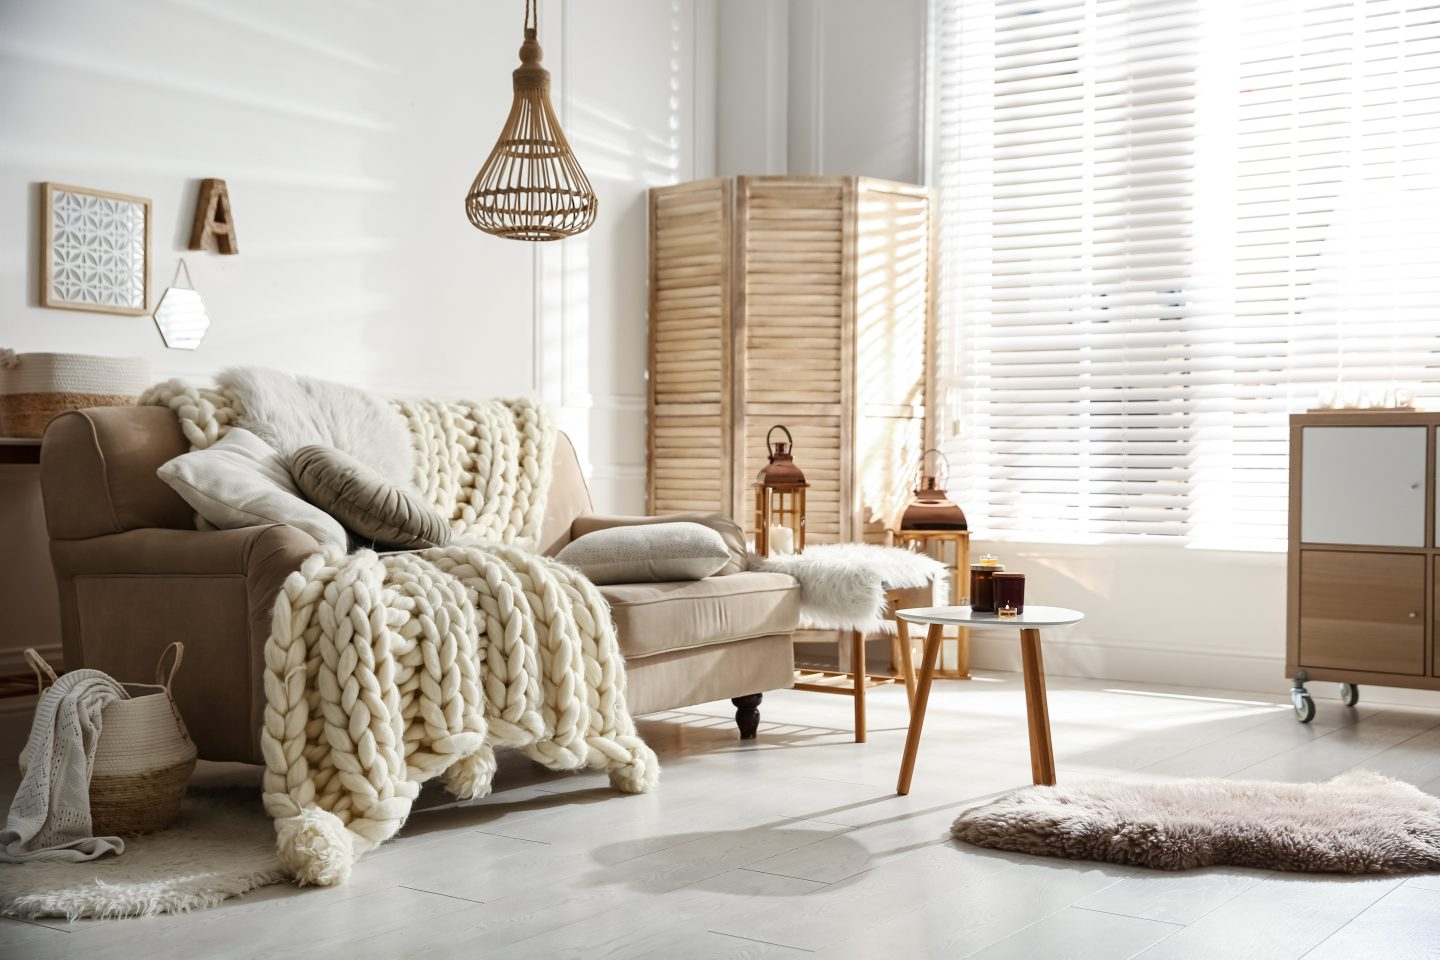 Cozy living room interior with beige sofa, knitted blanket and cushions